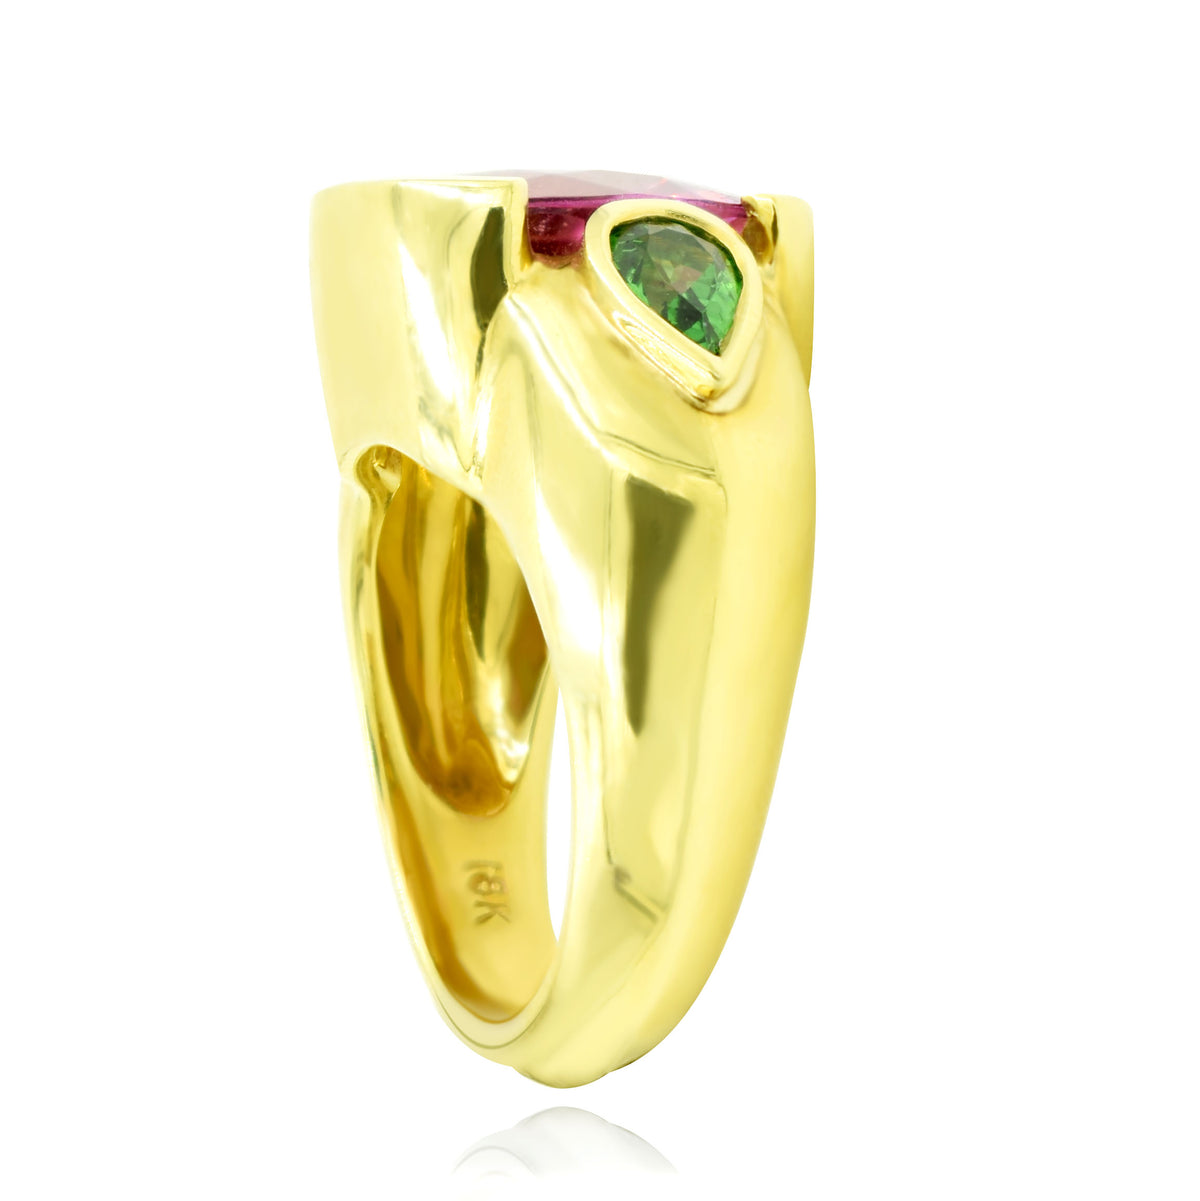 18K Yellow Gold Cushion Shaped Pink Tourmaline and Tsavorite Ring